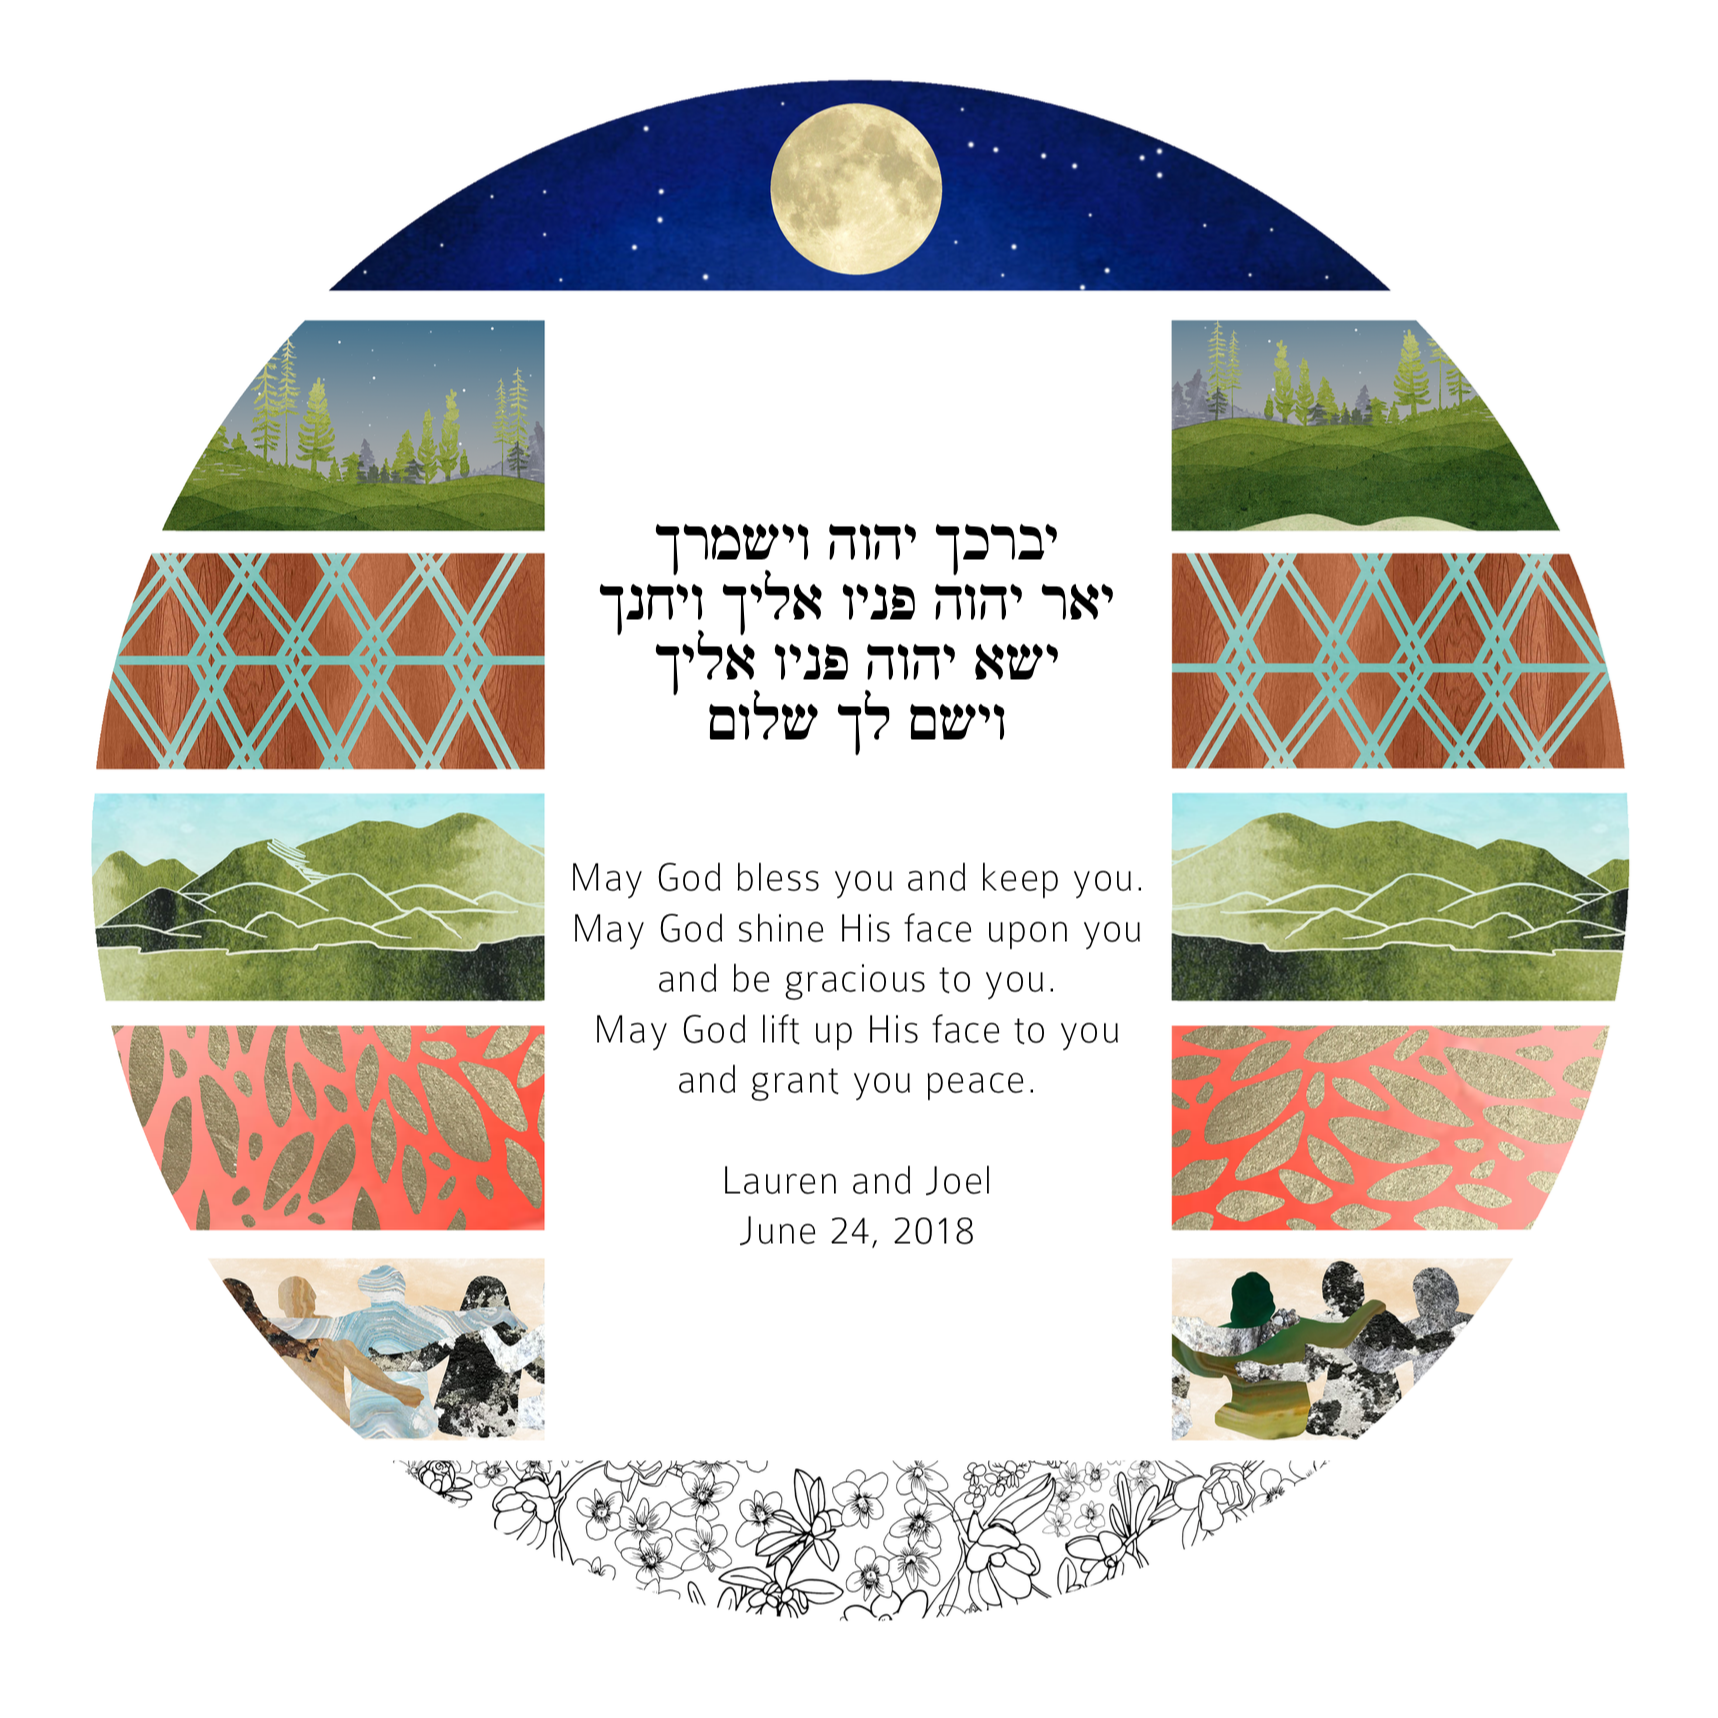 The Priestly Blessing, a gift to the parents of the newlyweds